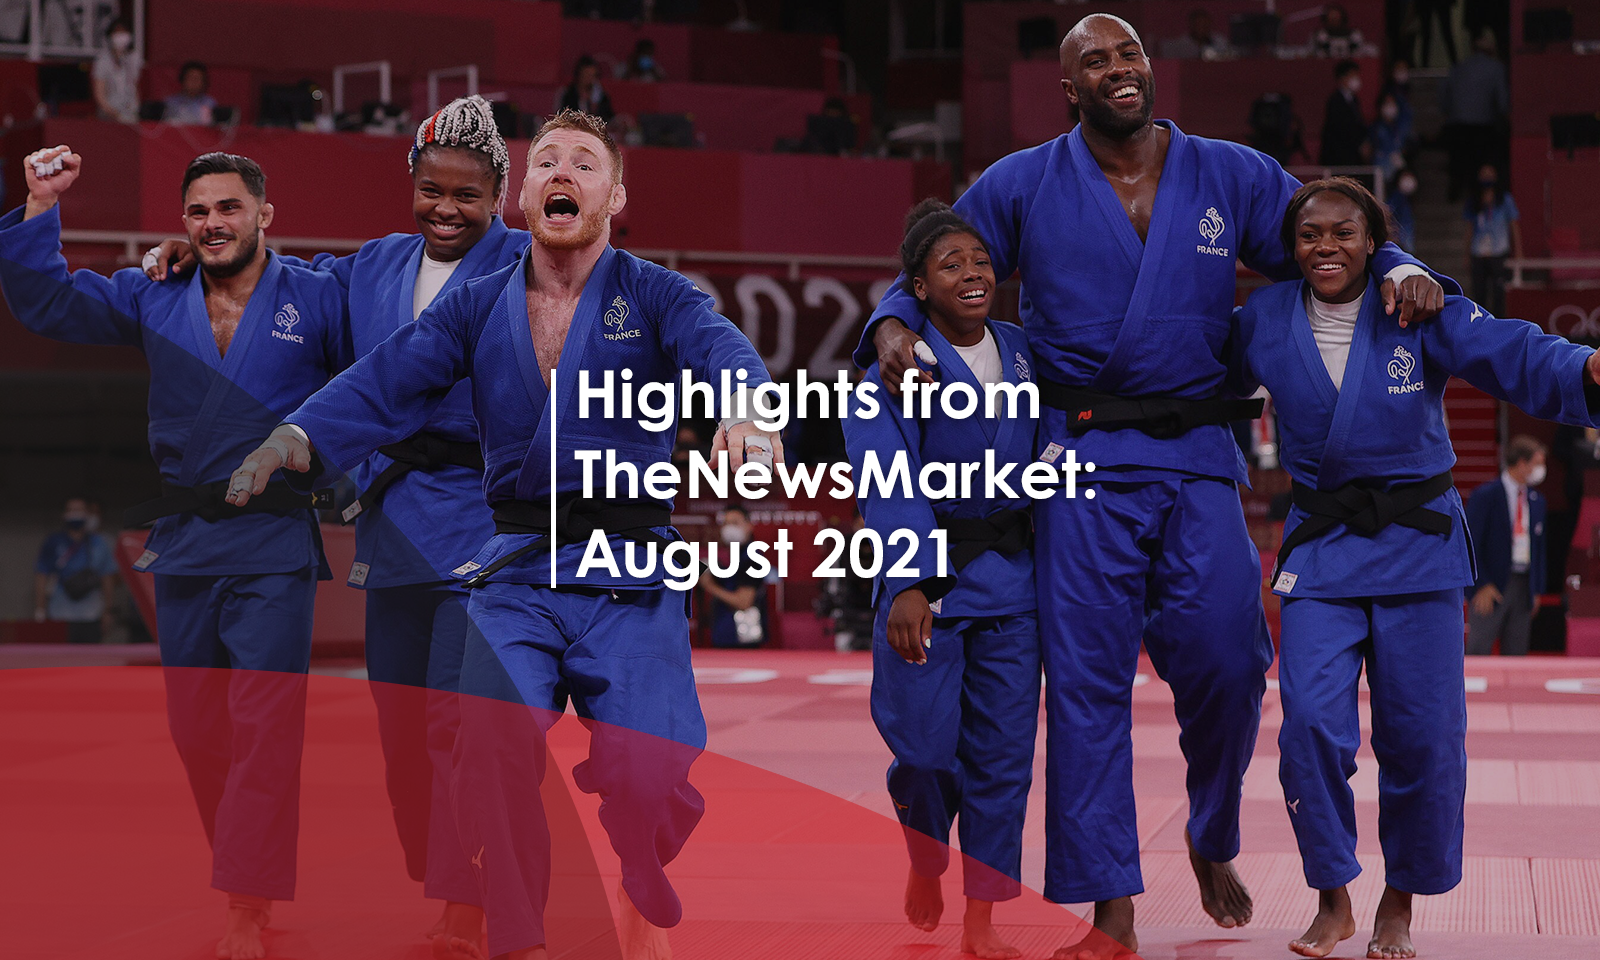 Highlights from TheNewsMarket: August 2021